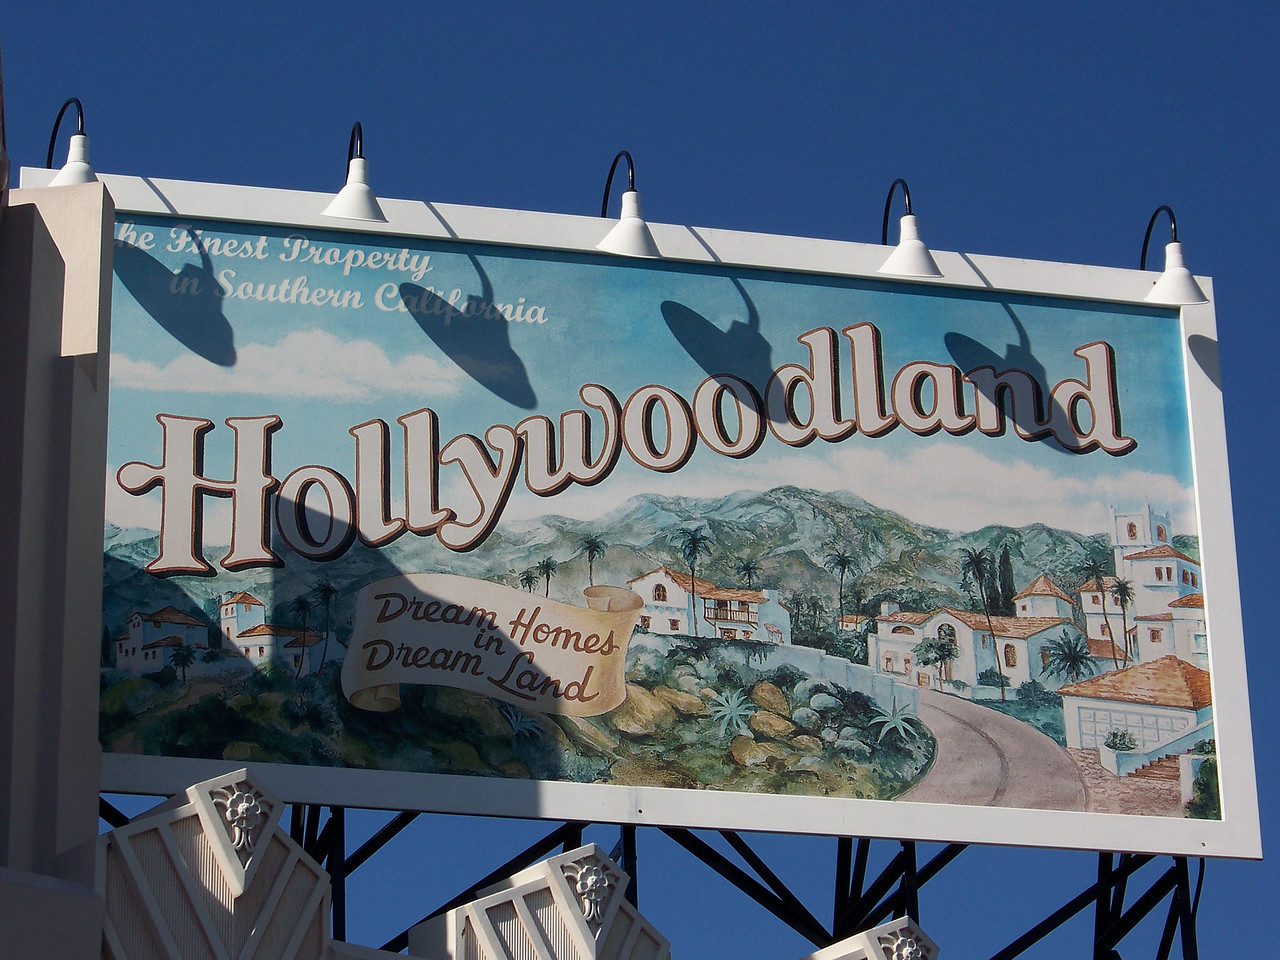 """Billboard on Hollywood Blvd.  The original Hollywood sign (which indeed said """"Hollywoodland"""") was erected as a promotional tool for real estate developers in the early 1920s.  So this sign helps to establish the era being protrayed in this part of the park.<br /> [Disney's Hollywood Studios]"""